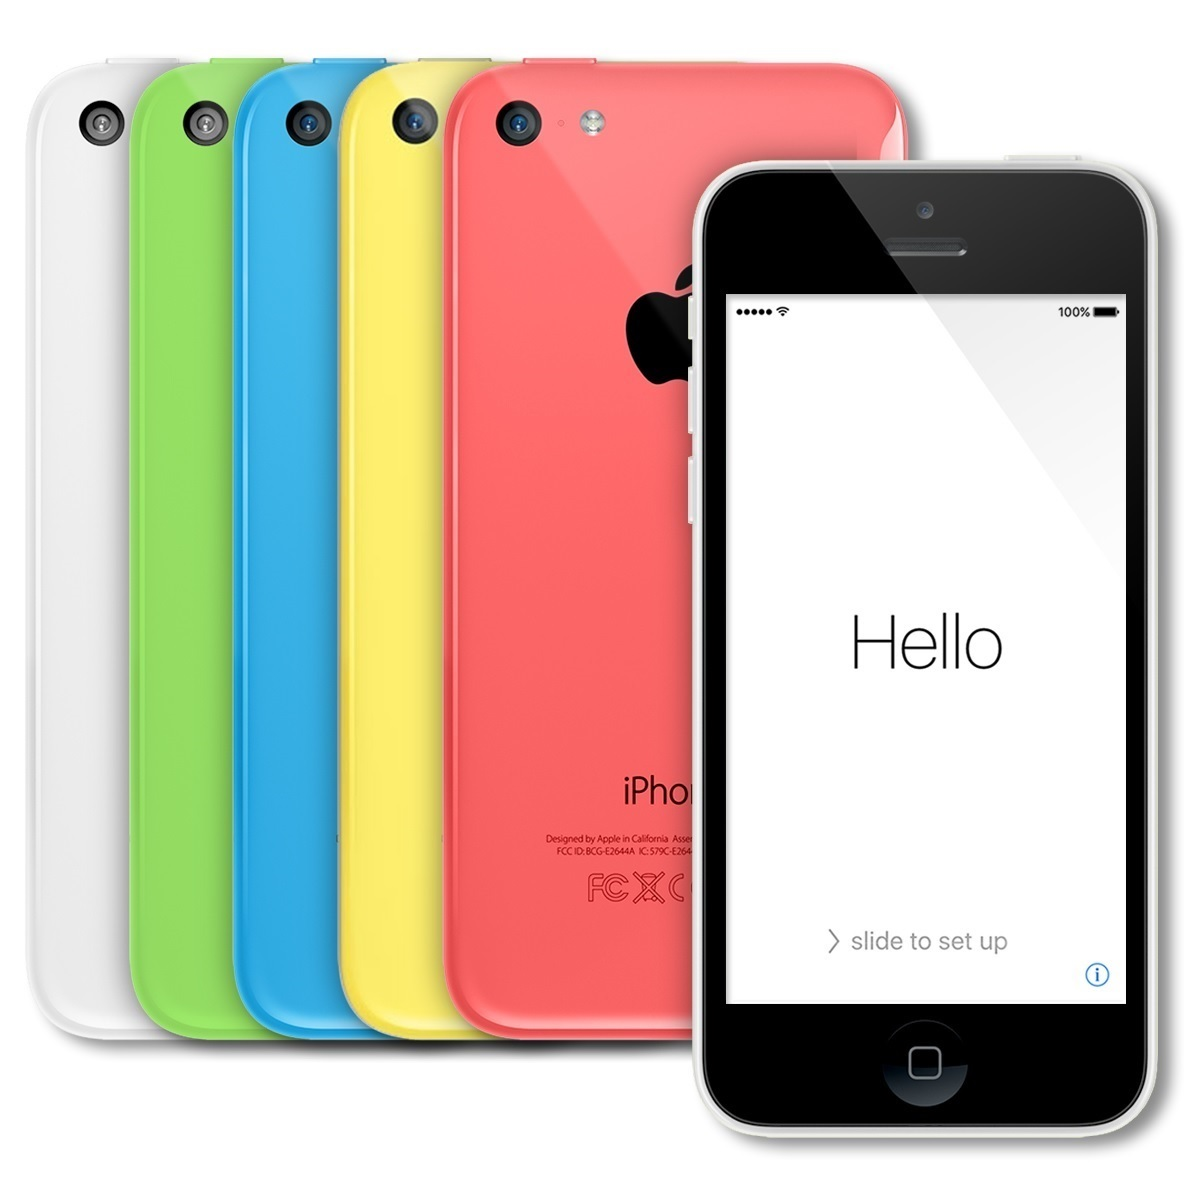 apple iphone 5c smartphone 32gb att no contract ebay. Black Bedroom Furniture Sets. Home Design Ideas